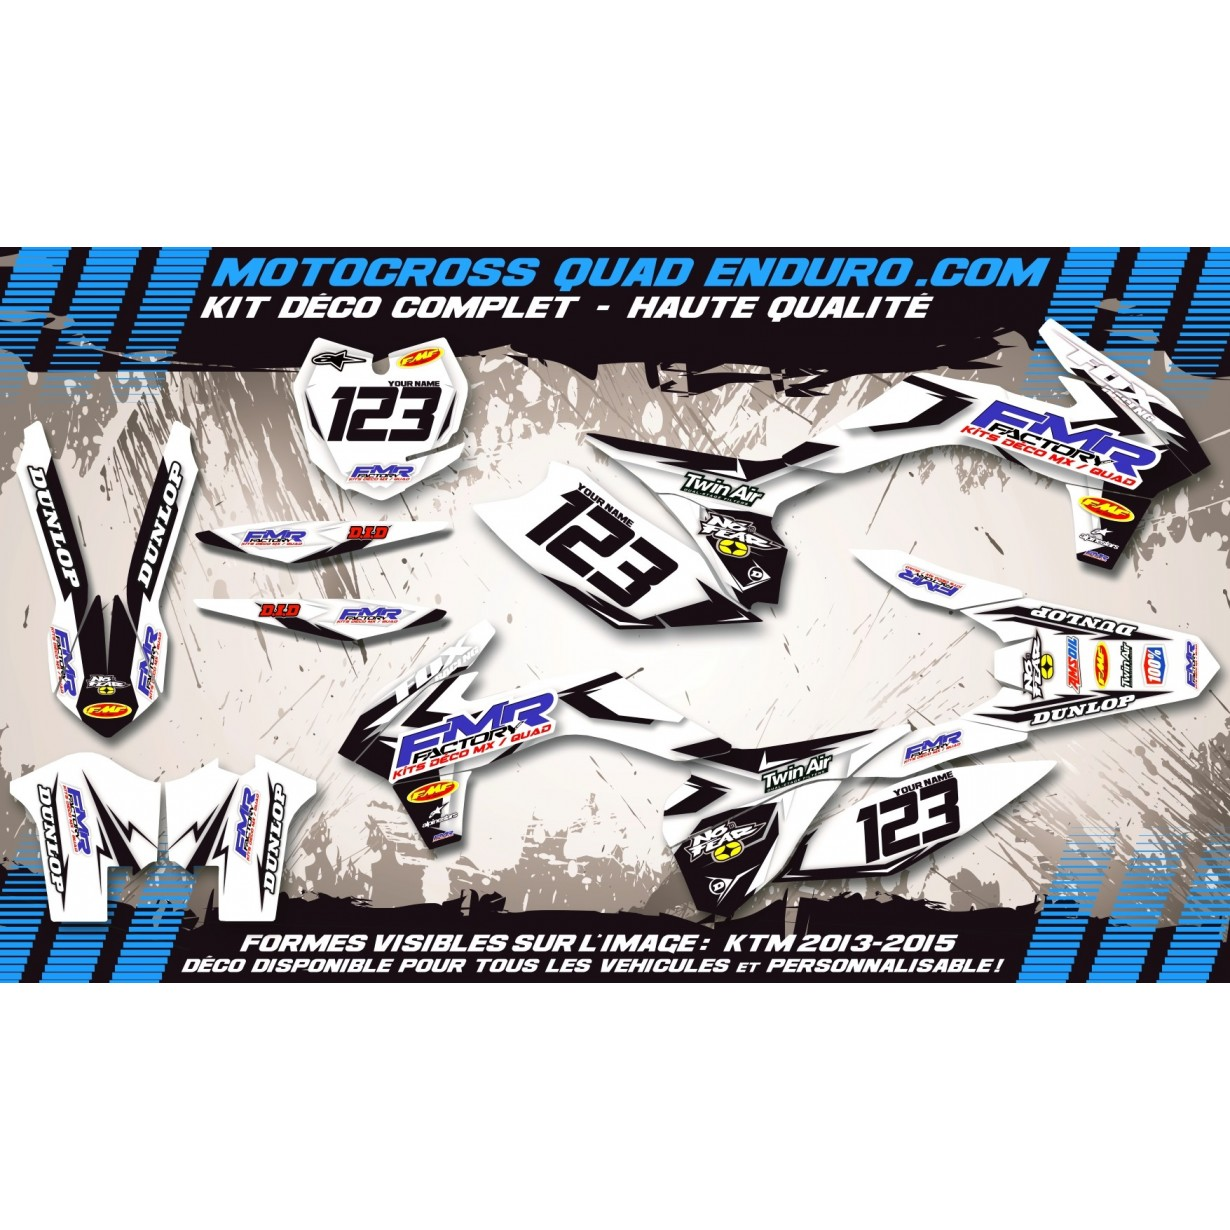 KIT DÉCO Perso MC 03-06 Fmr factory WT Edition MA13WT